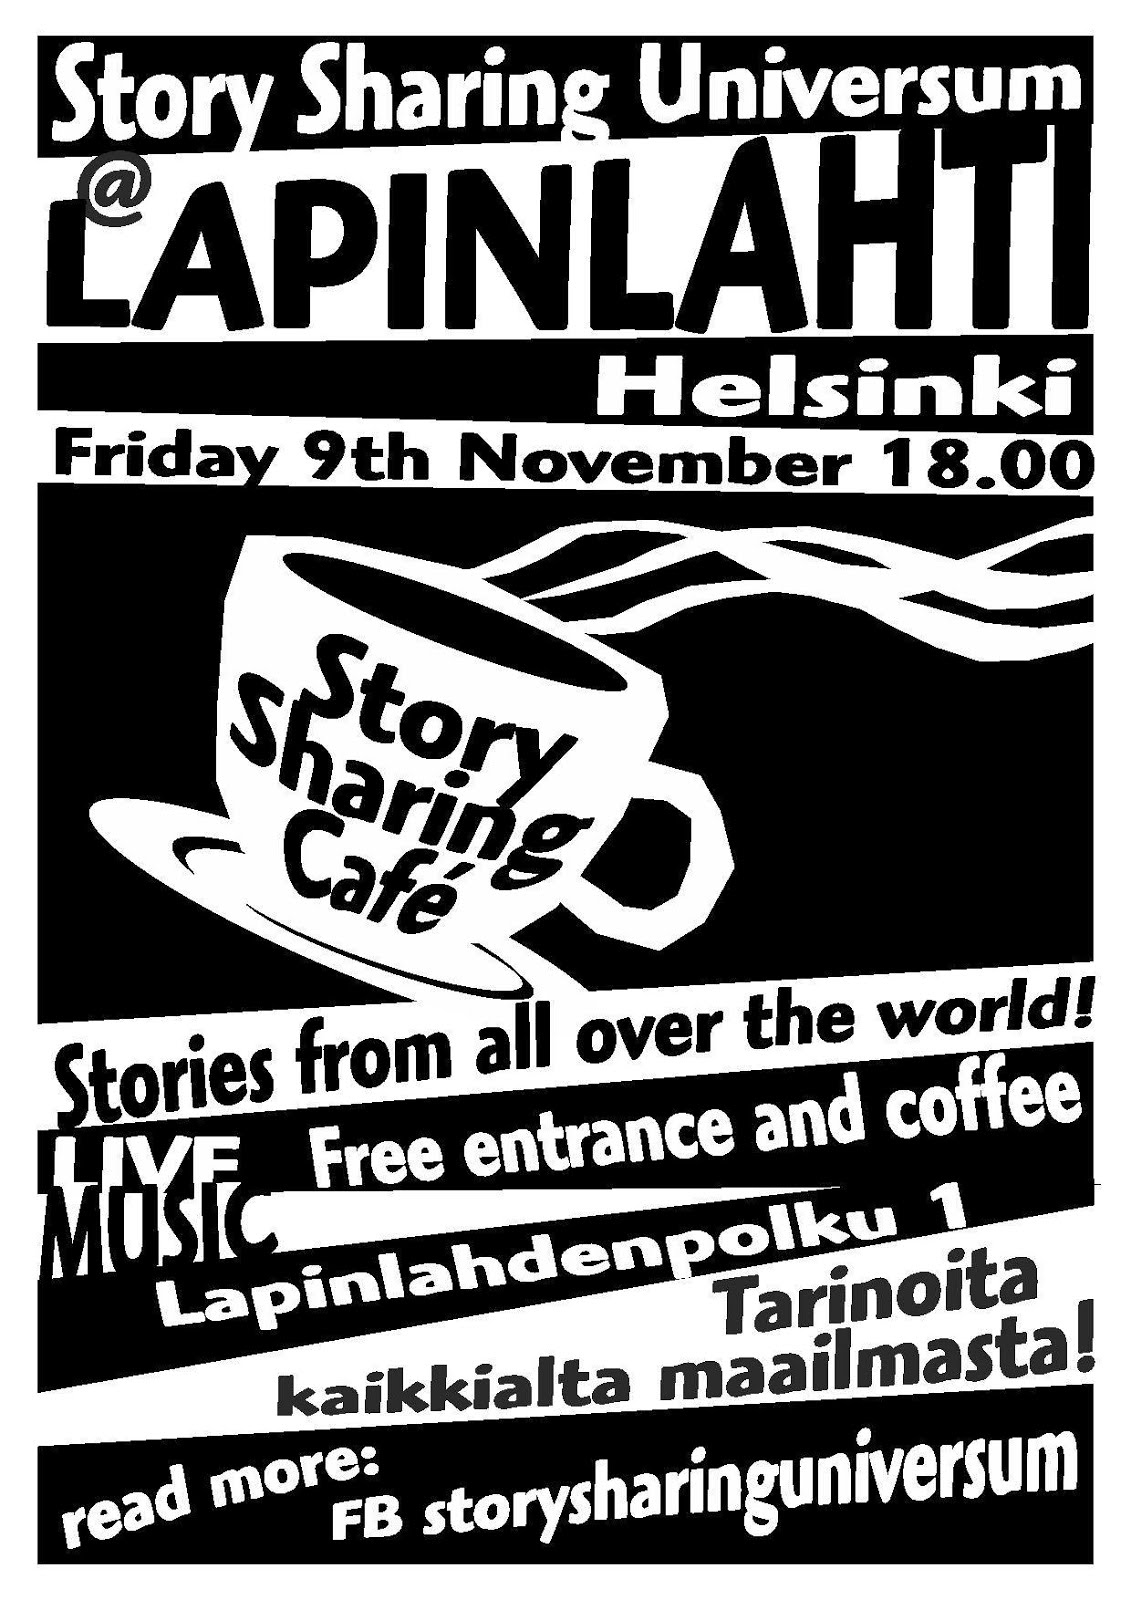 Story Sharing Café at Lapinlahti